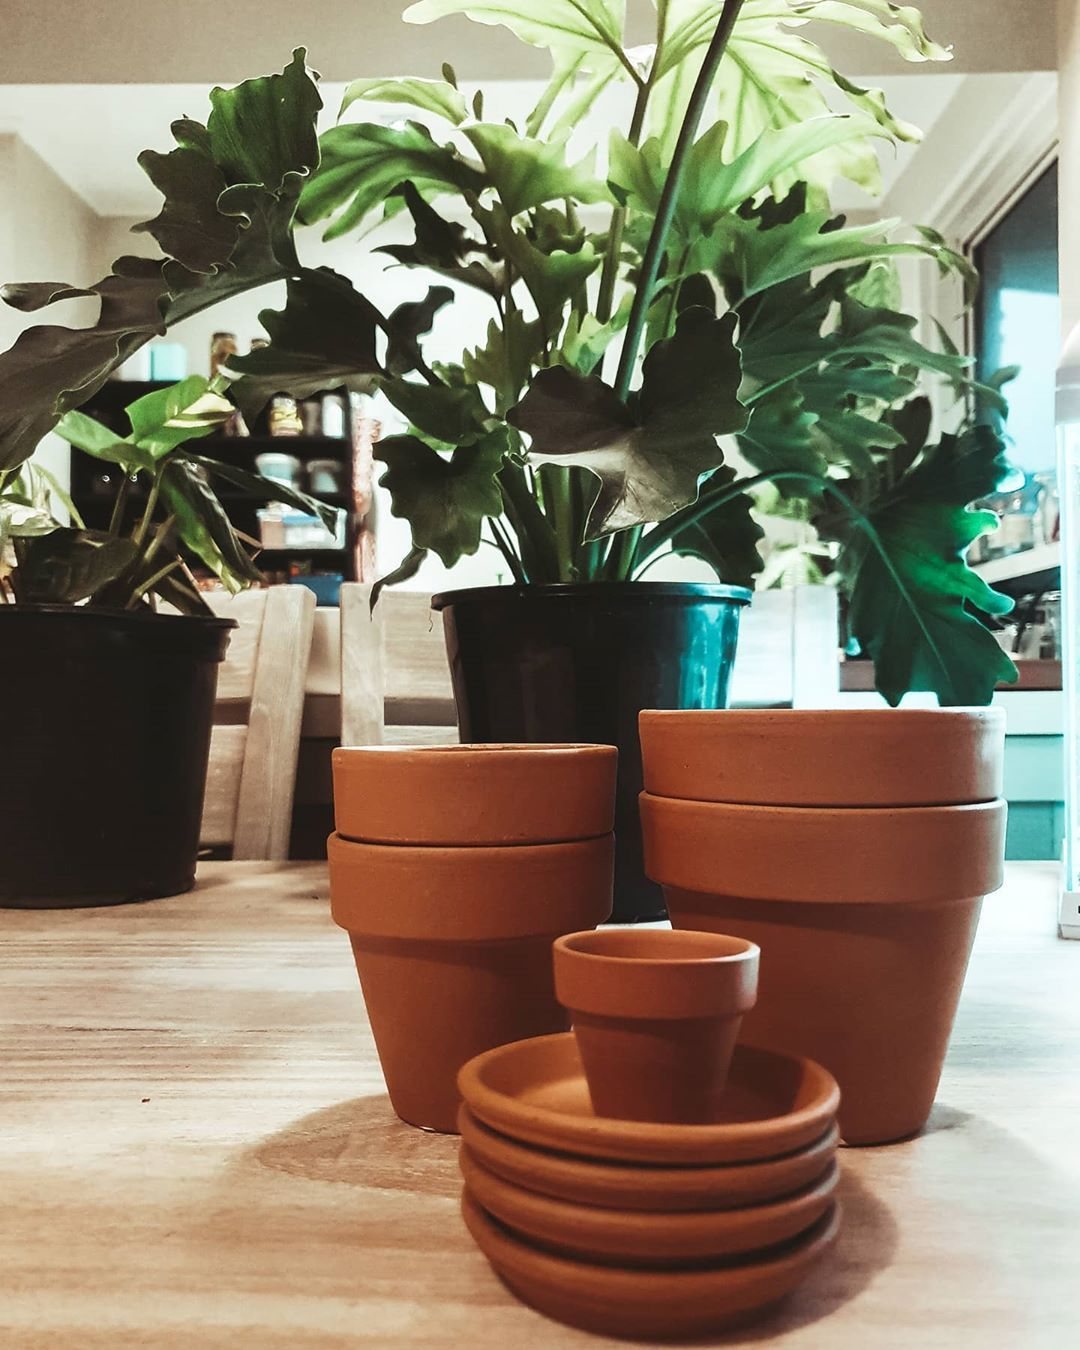 how awesome are terracotta pots though? and cheap  really really cheap. planets are so expensive these days 🌿 🌿 anyone know of any good nz small businesses that make plantsers? i really want to help out where I can and would love some different kind of styles 🌿 🌿 🌿 🌿 #terracotta #terracottapots #plant #plants #nature #plantsofinstagram #green #photography #plantsmakepeoplehappy #gardening #naturephotography #plantlover #houseplants #love #urbanjungle #art #plantlife #indoorplants #photooft